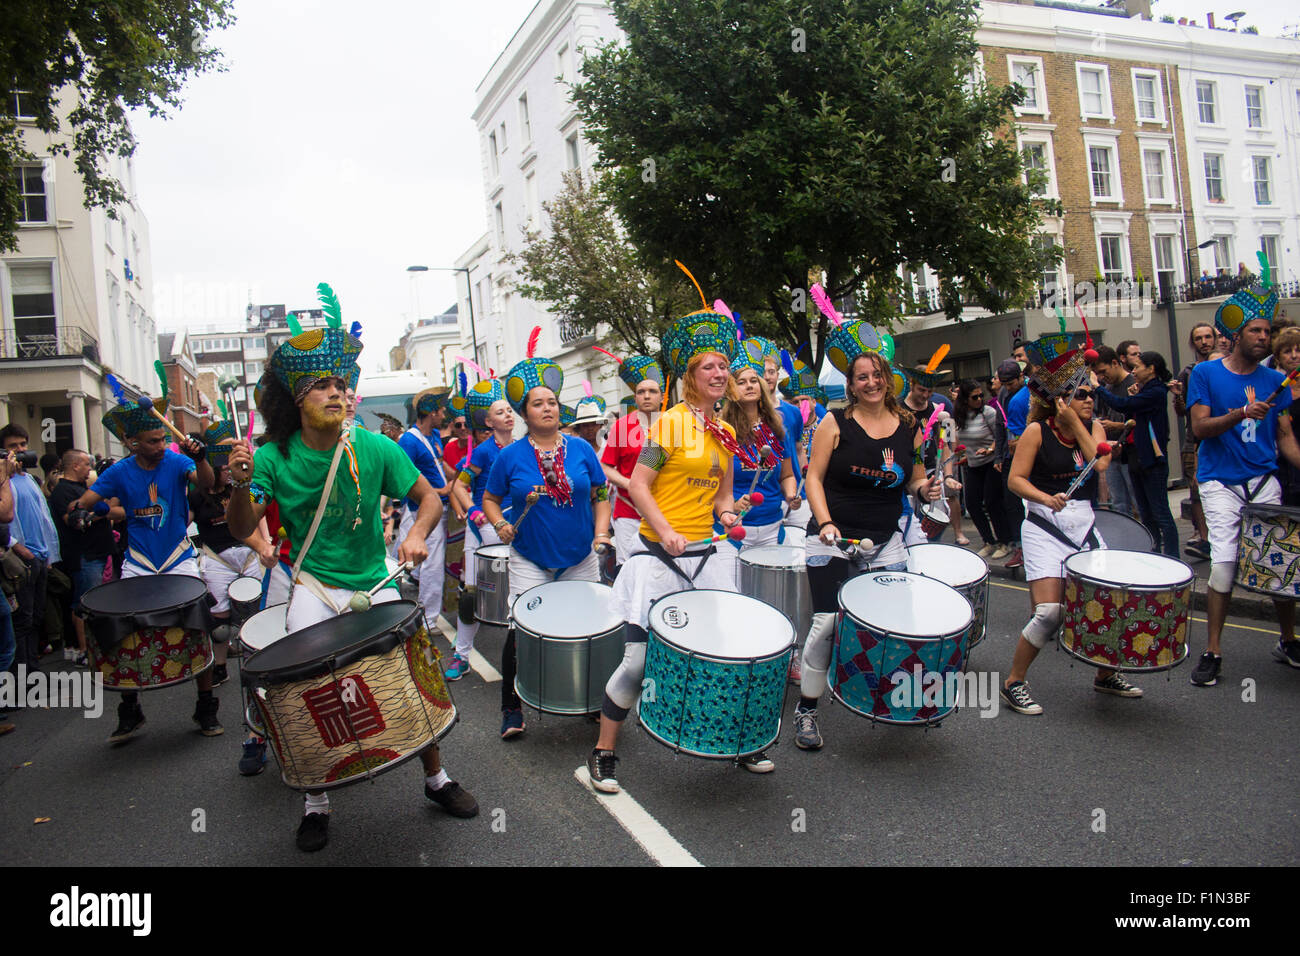 A musical group performing and playing drums on the first day of Notting Hill Carnival 2015 - Stock Image